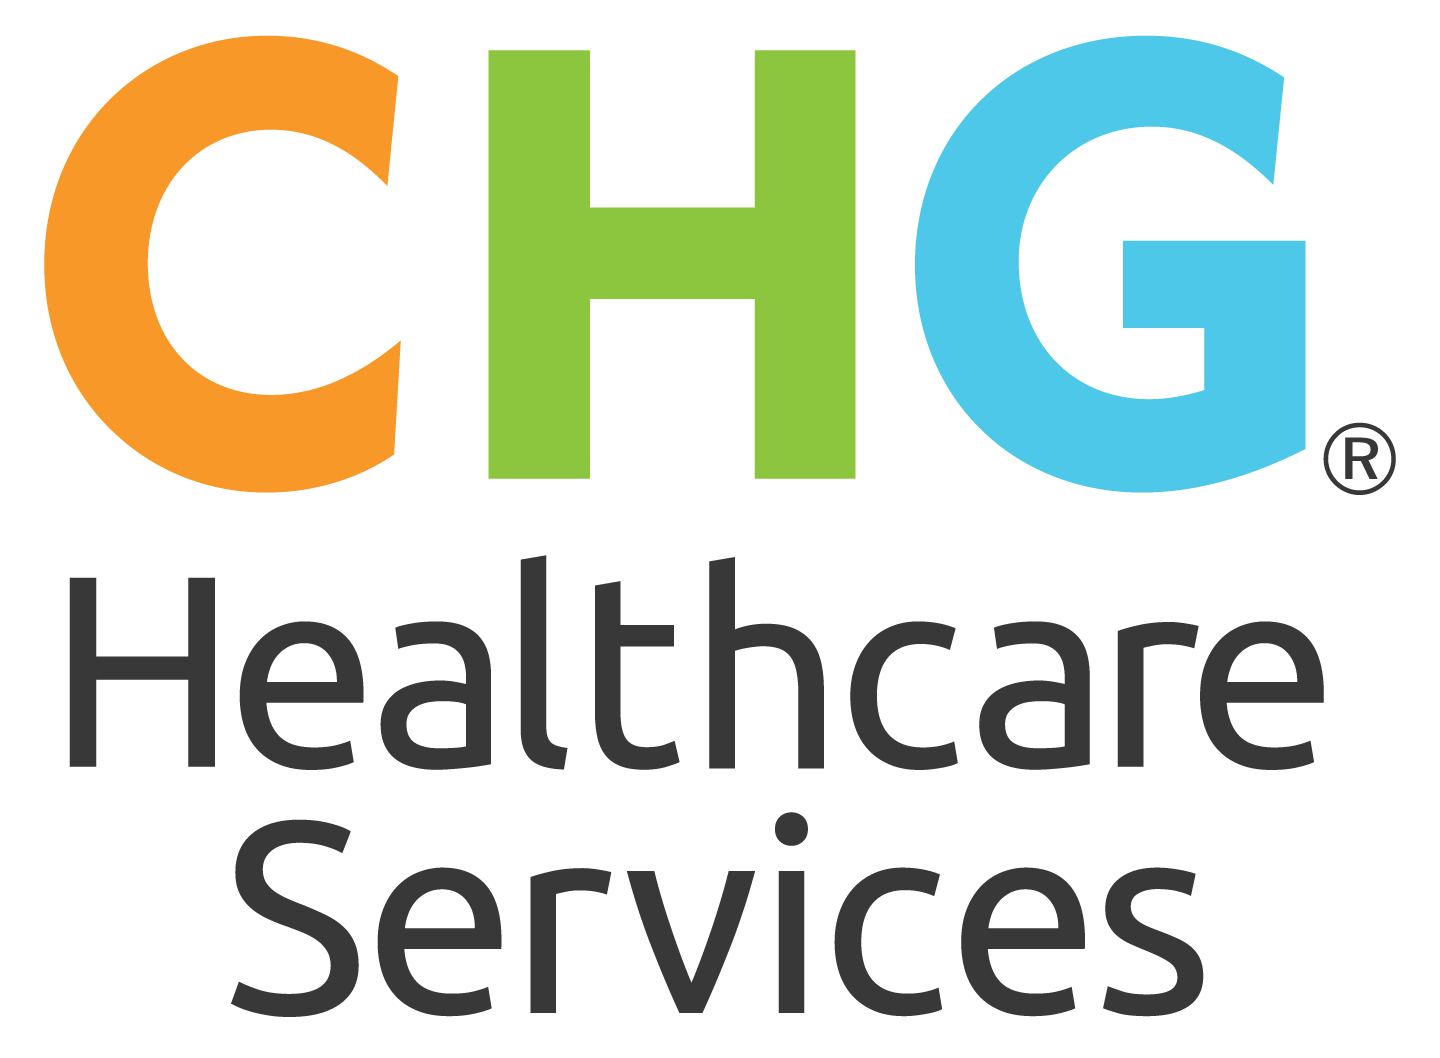 CHG_Health_Care.png